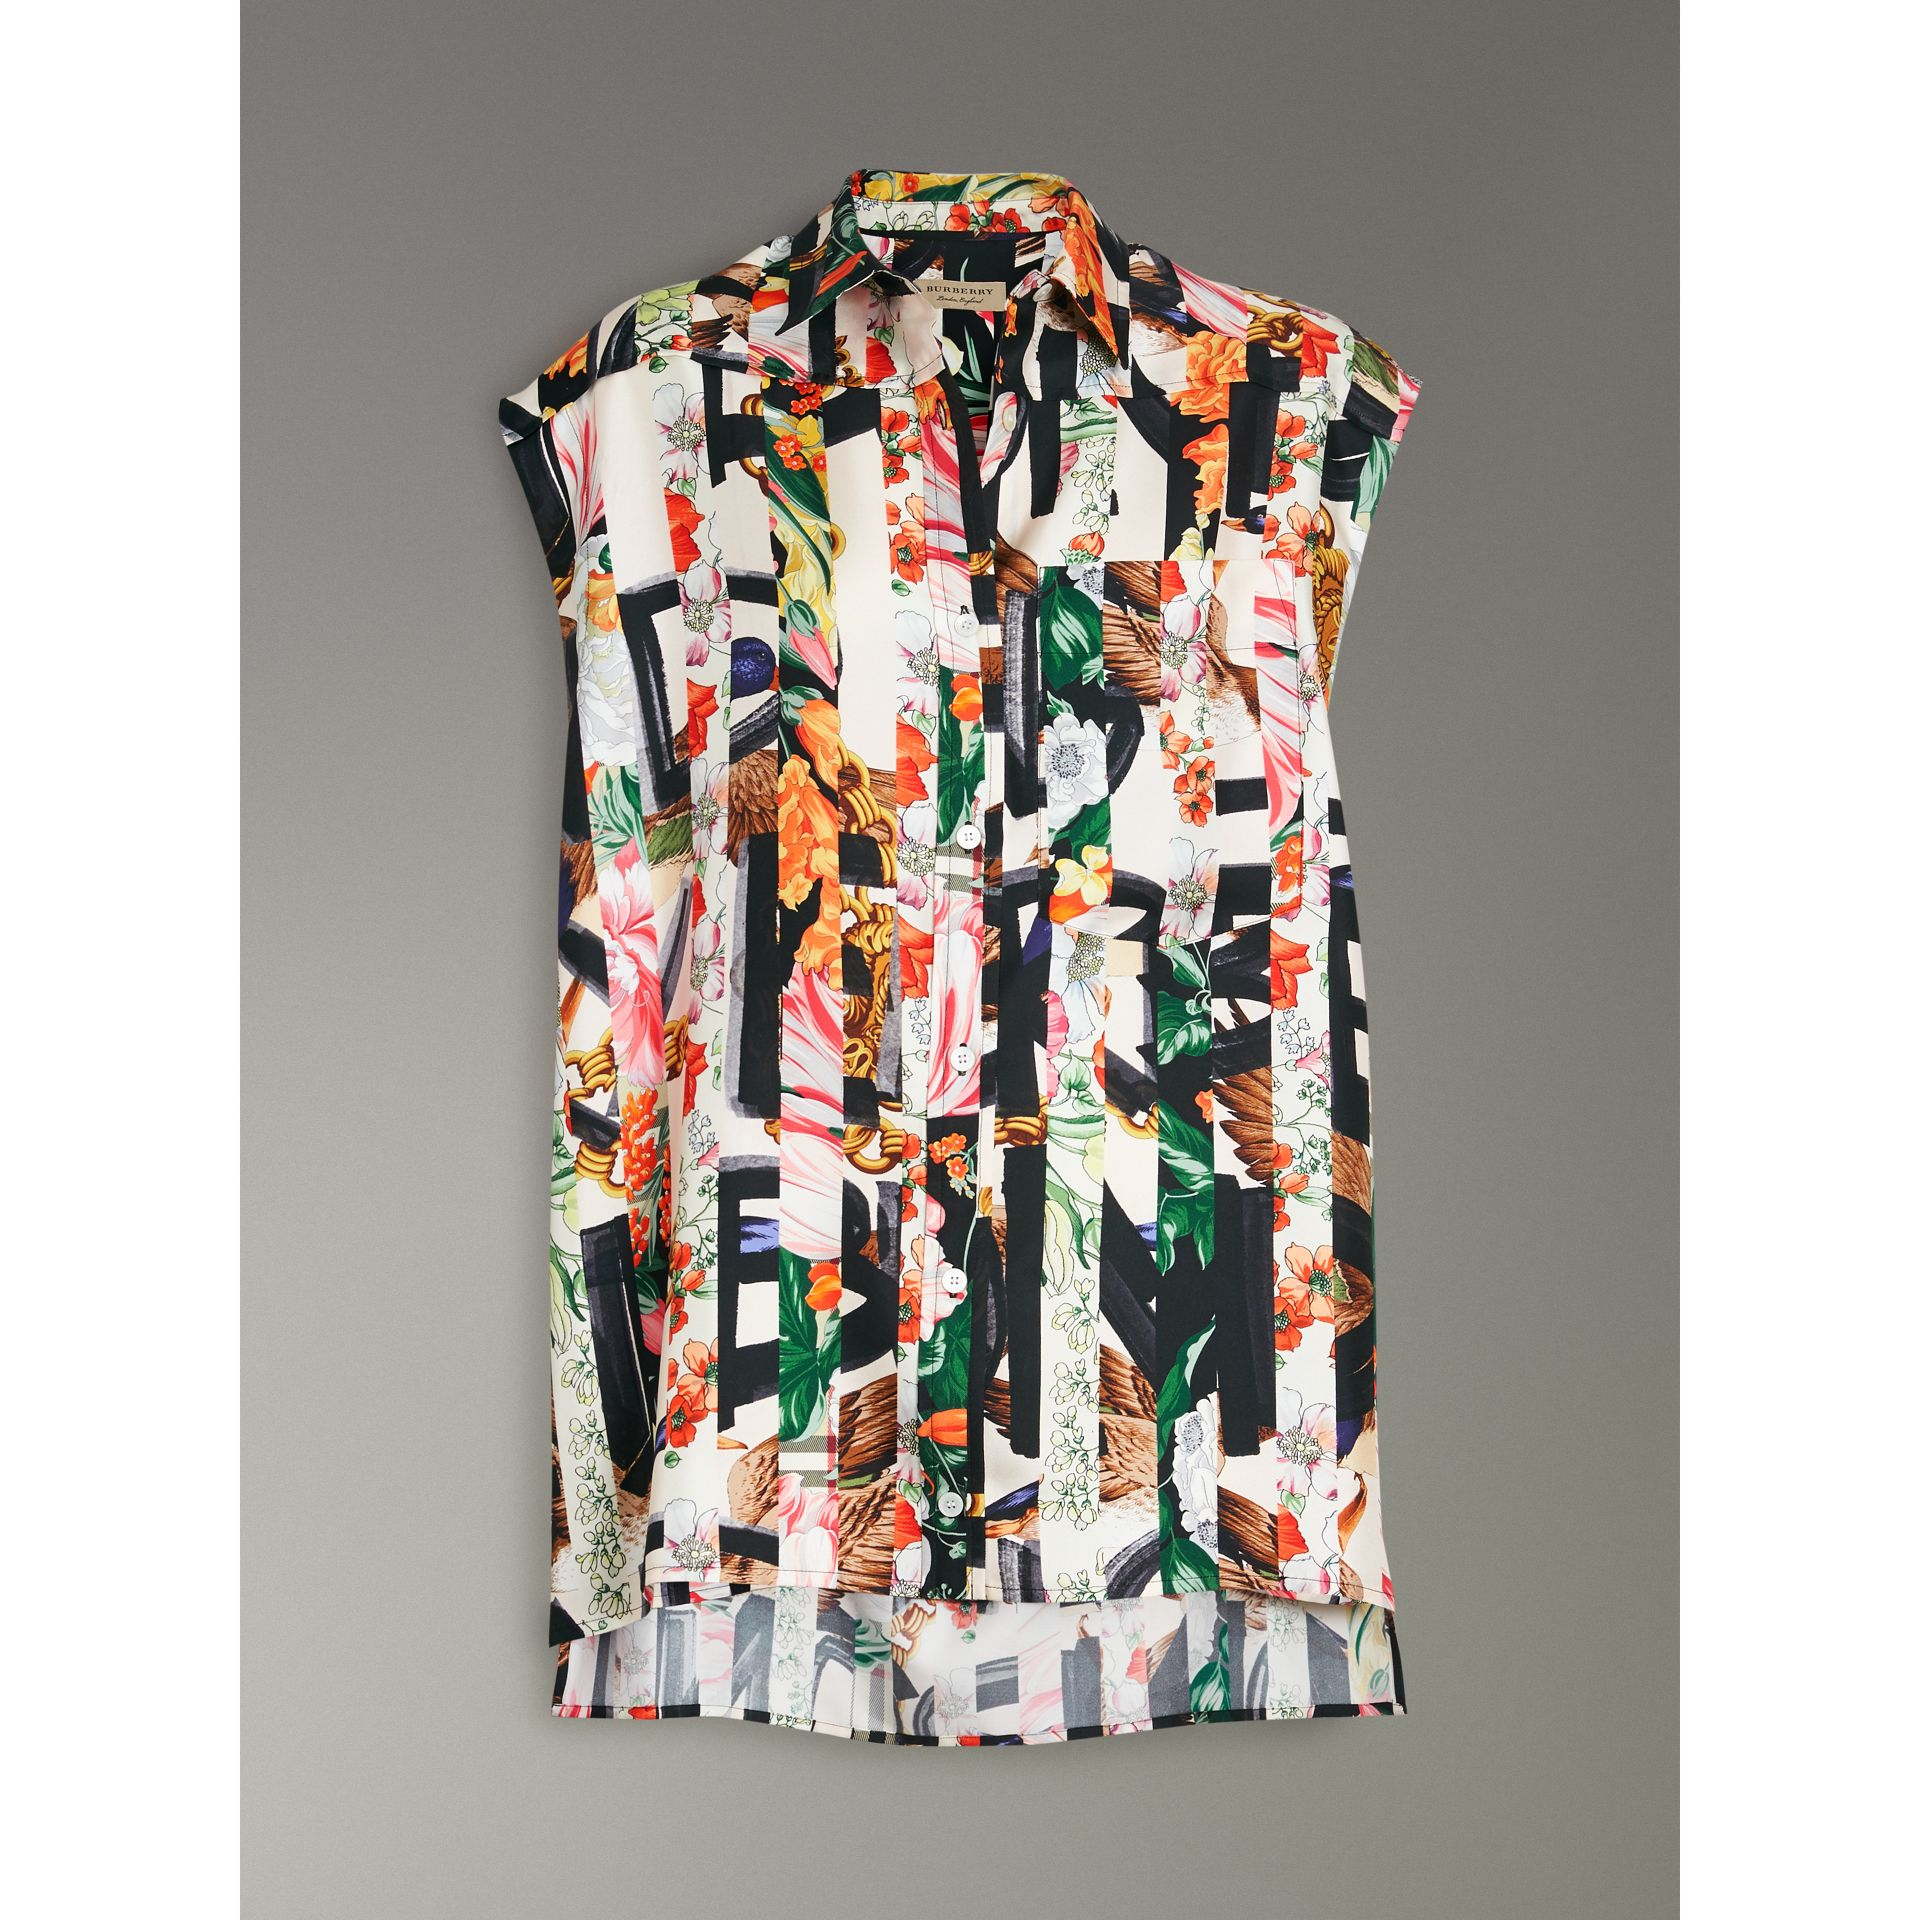 Archive Scarf Print Silk Sleeveless Shirt in Multicolour - Women | Burberry Canada - gallery image 3